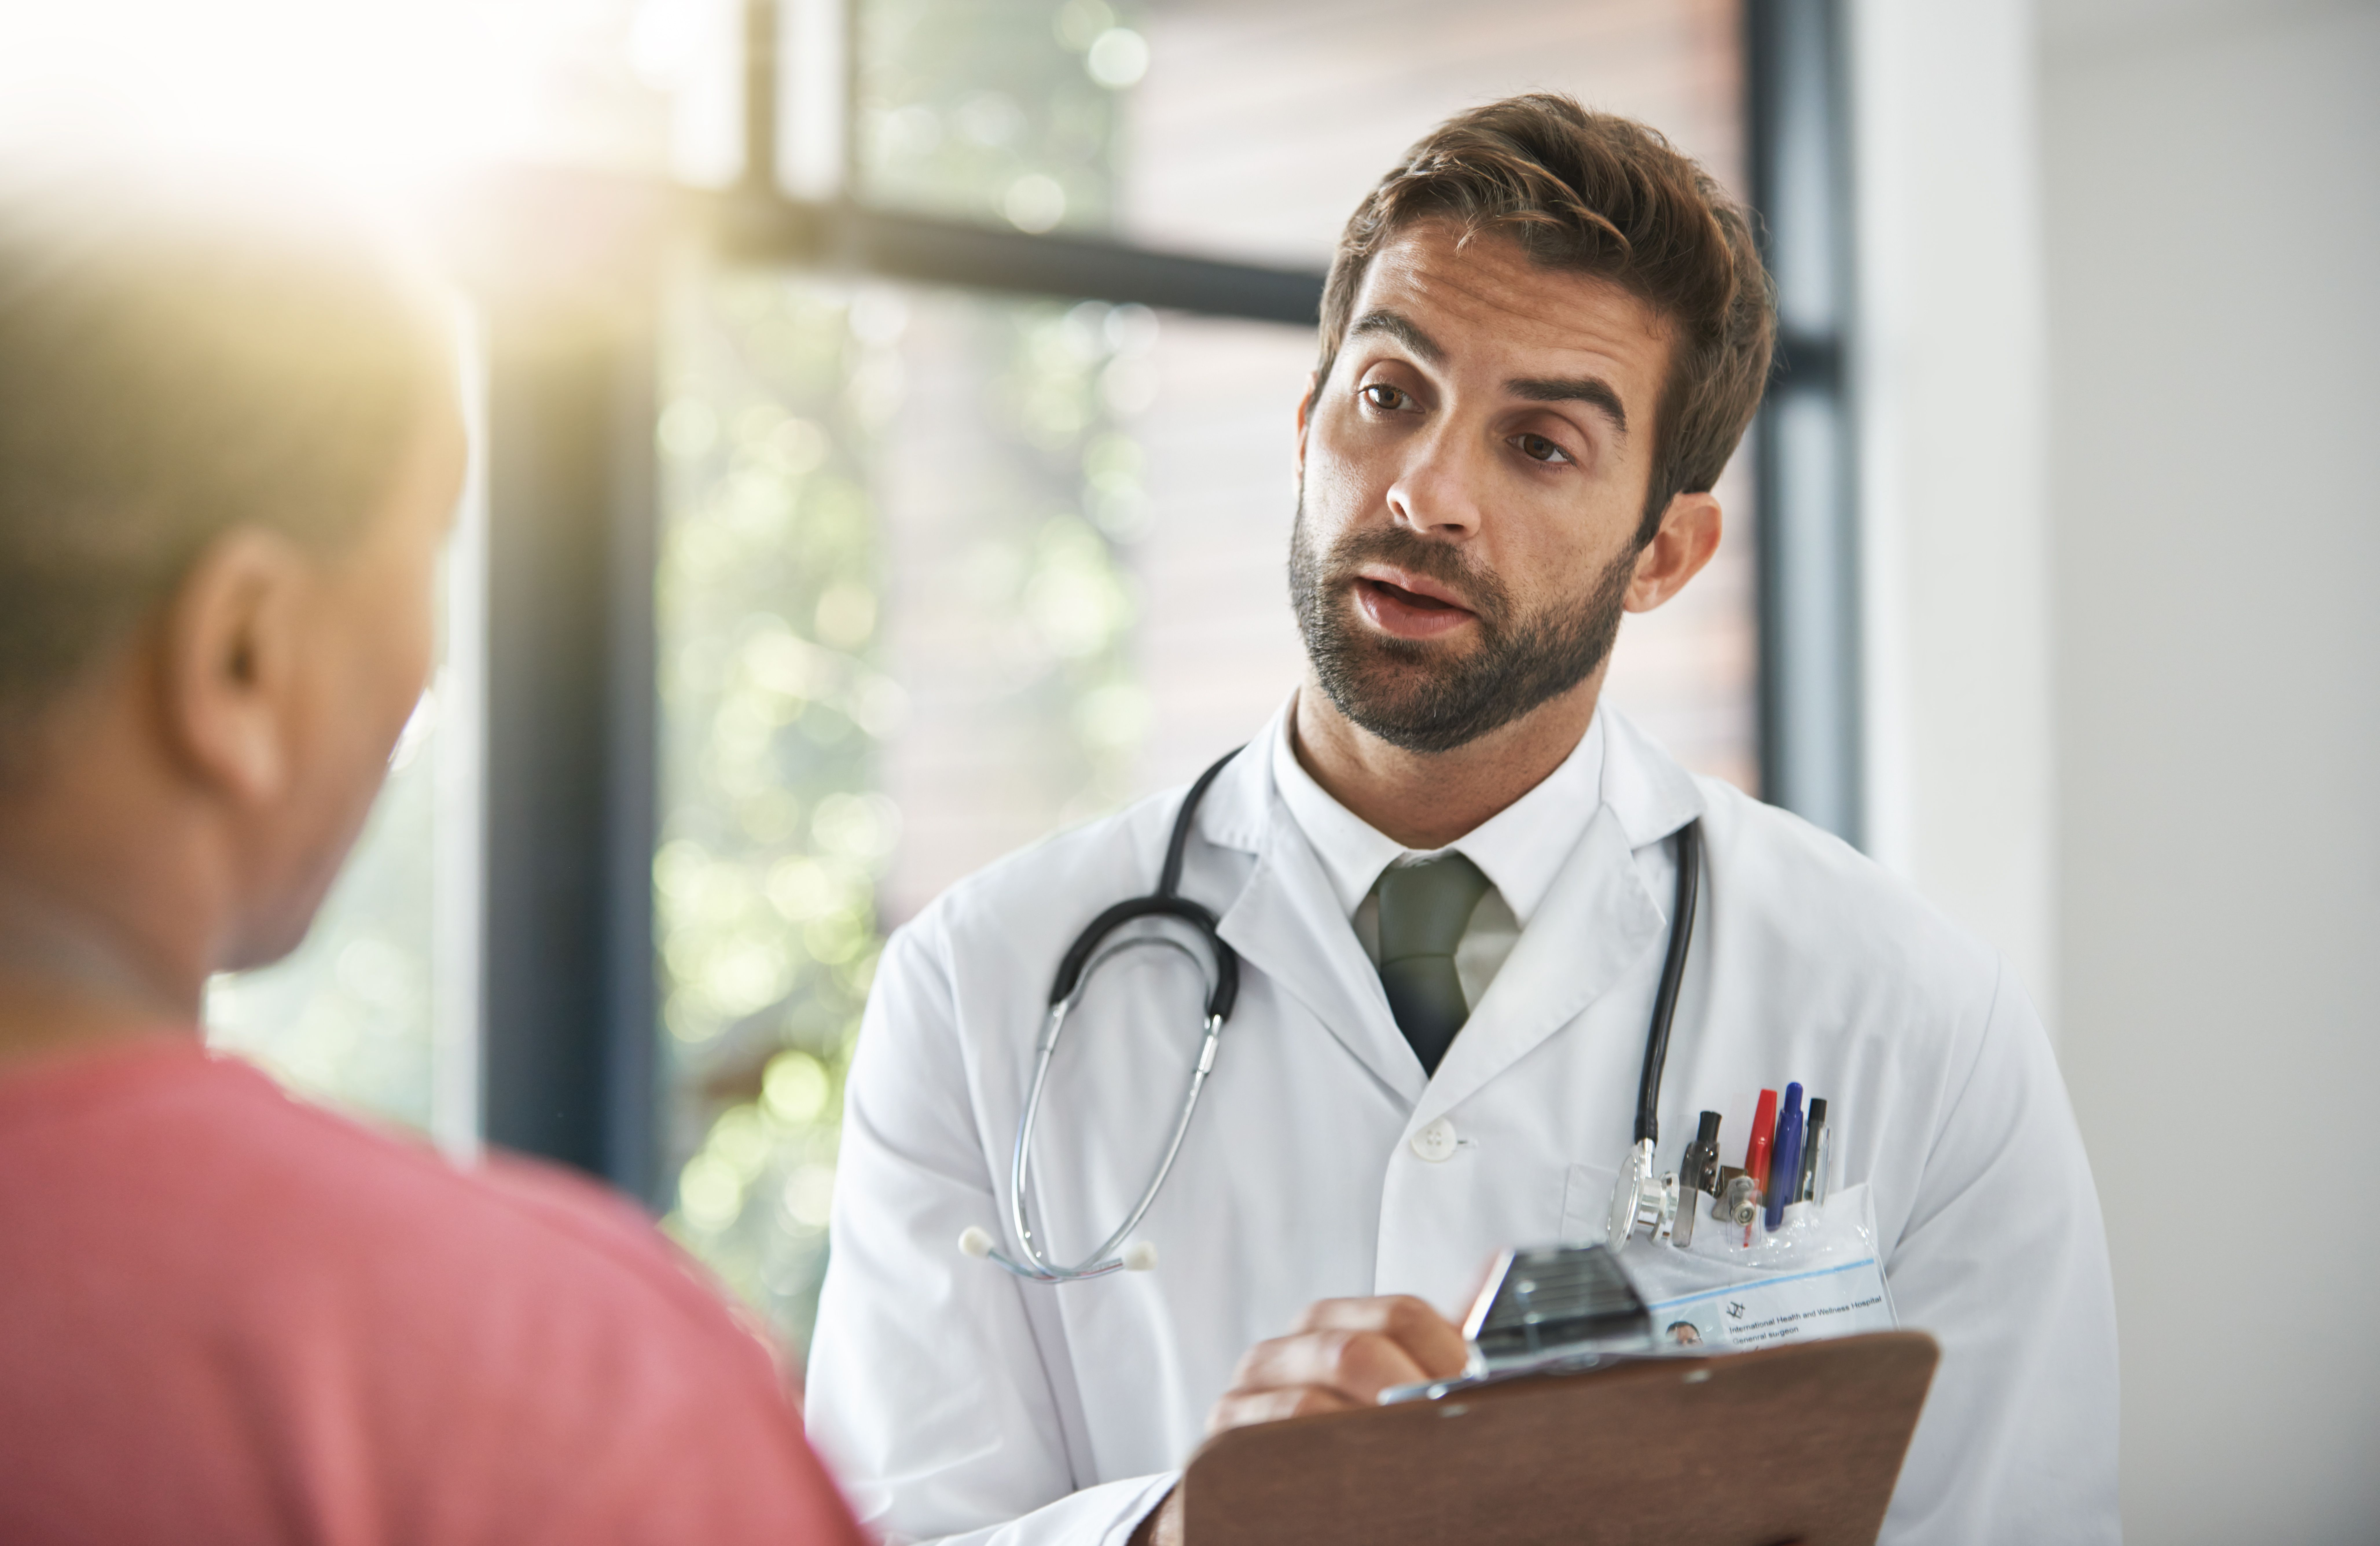 Pain Management Careers for Physicians – Anesthesiologist Job Description